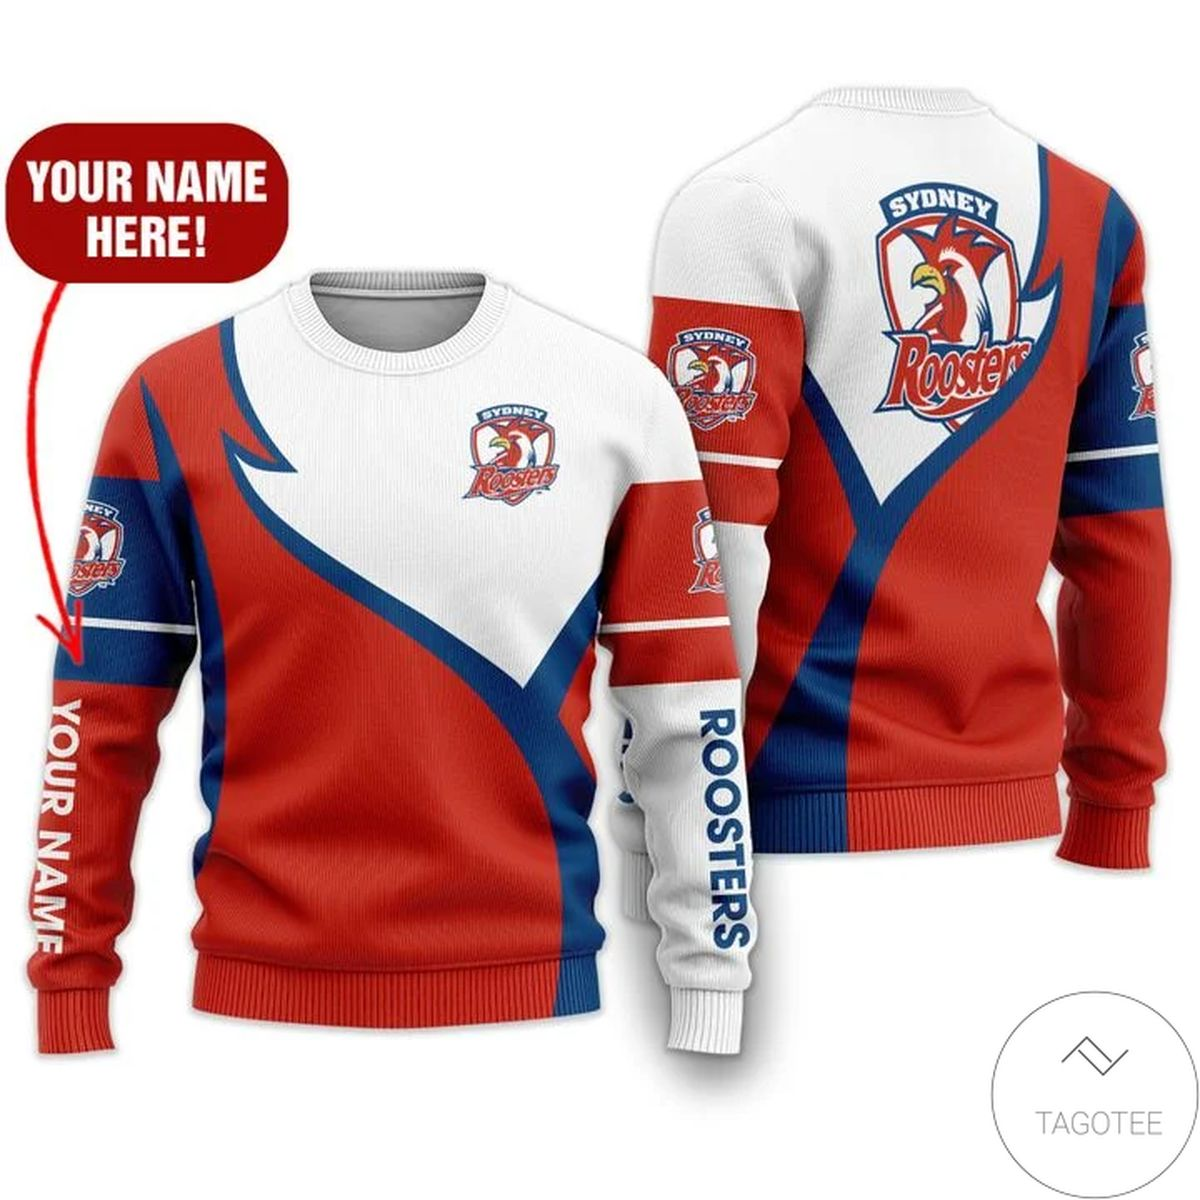 Personalized Sydney Roosters 3d Sweater